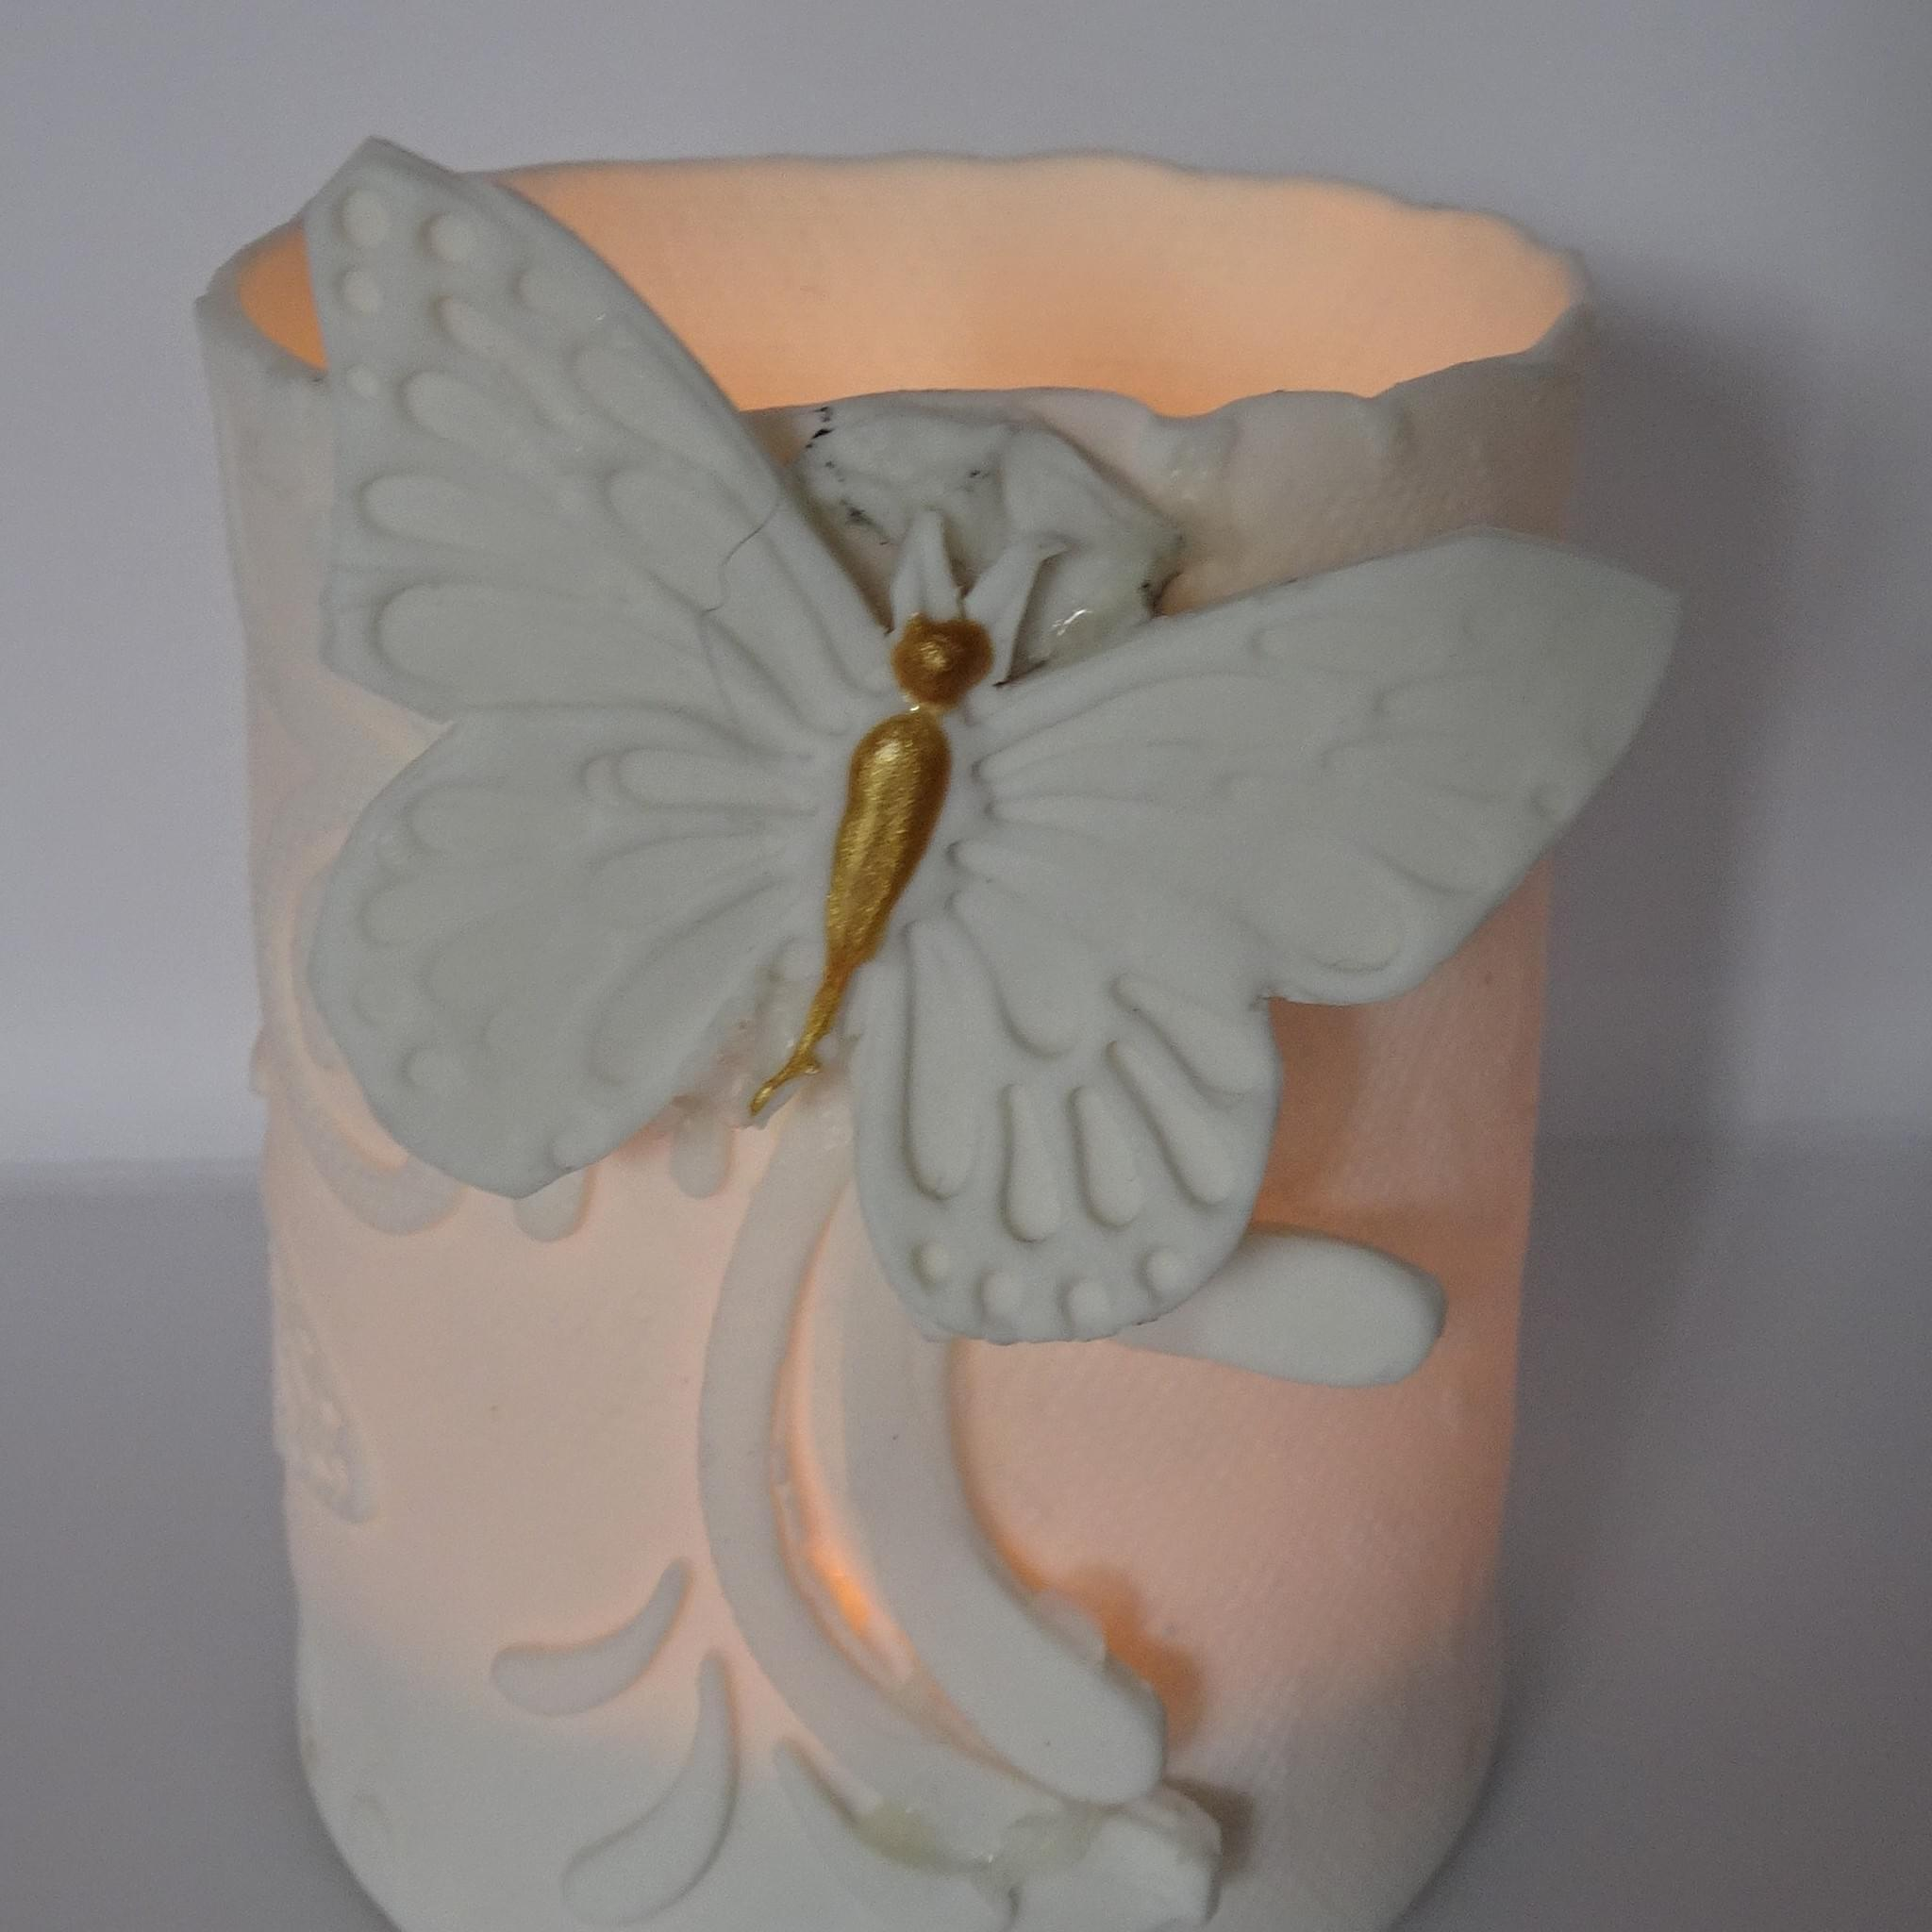 Handmade porcelain candle holder/trinket holder